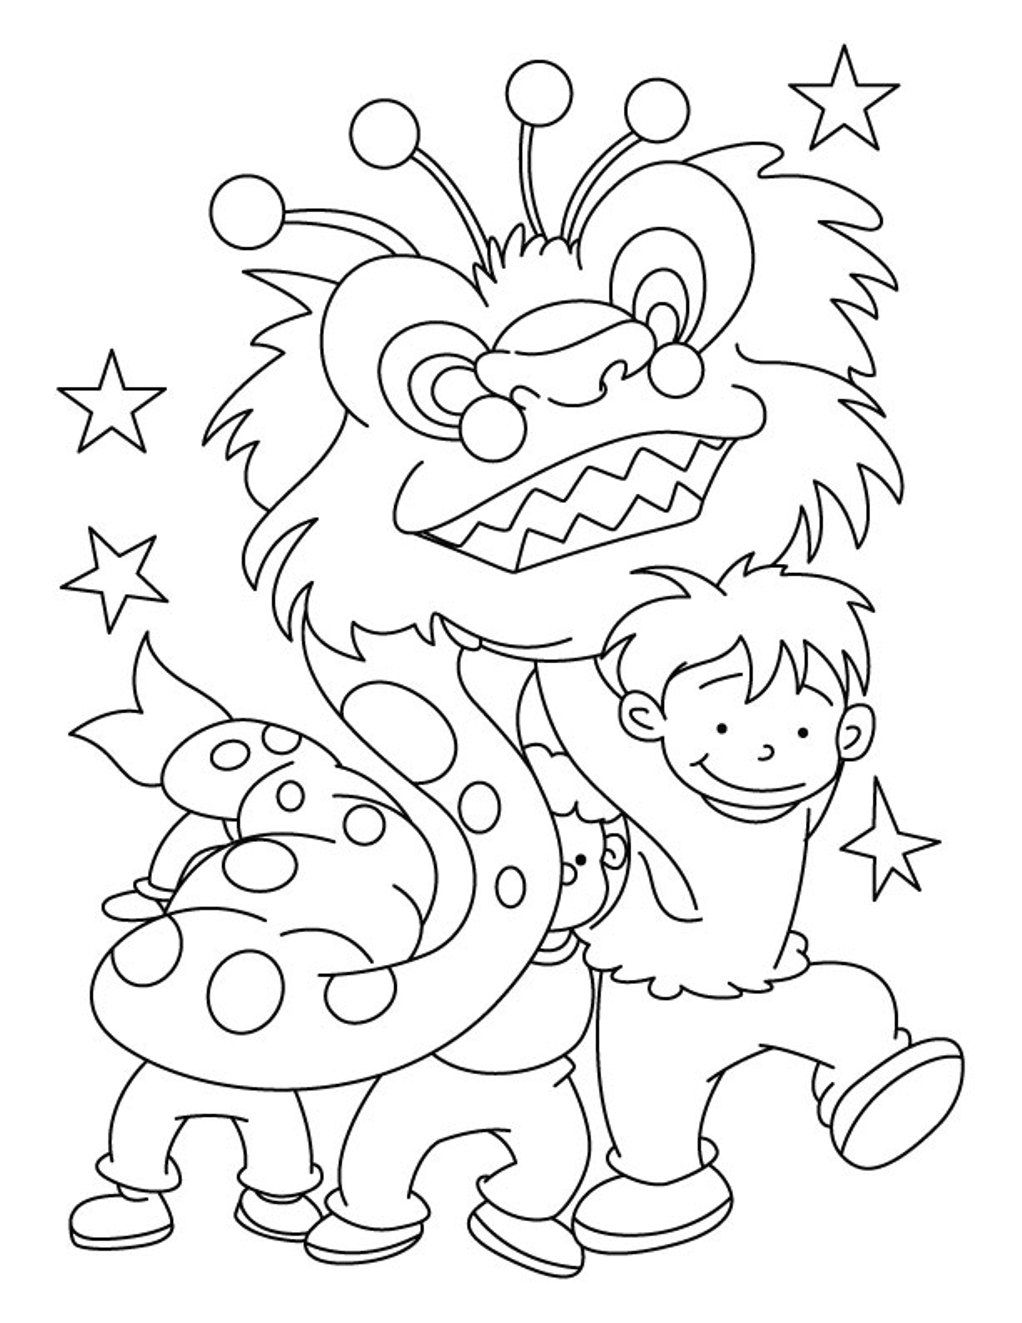 chinese new year dragon coloring page. dragon chinese new year coloring pages jpg  1022 1323 Craft